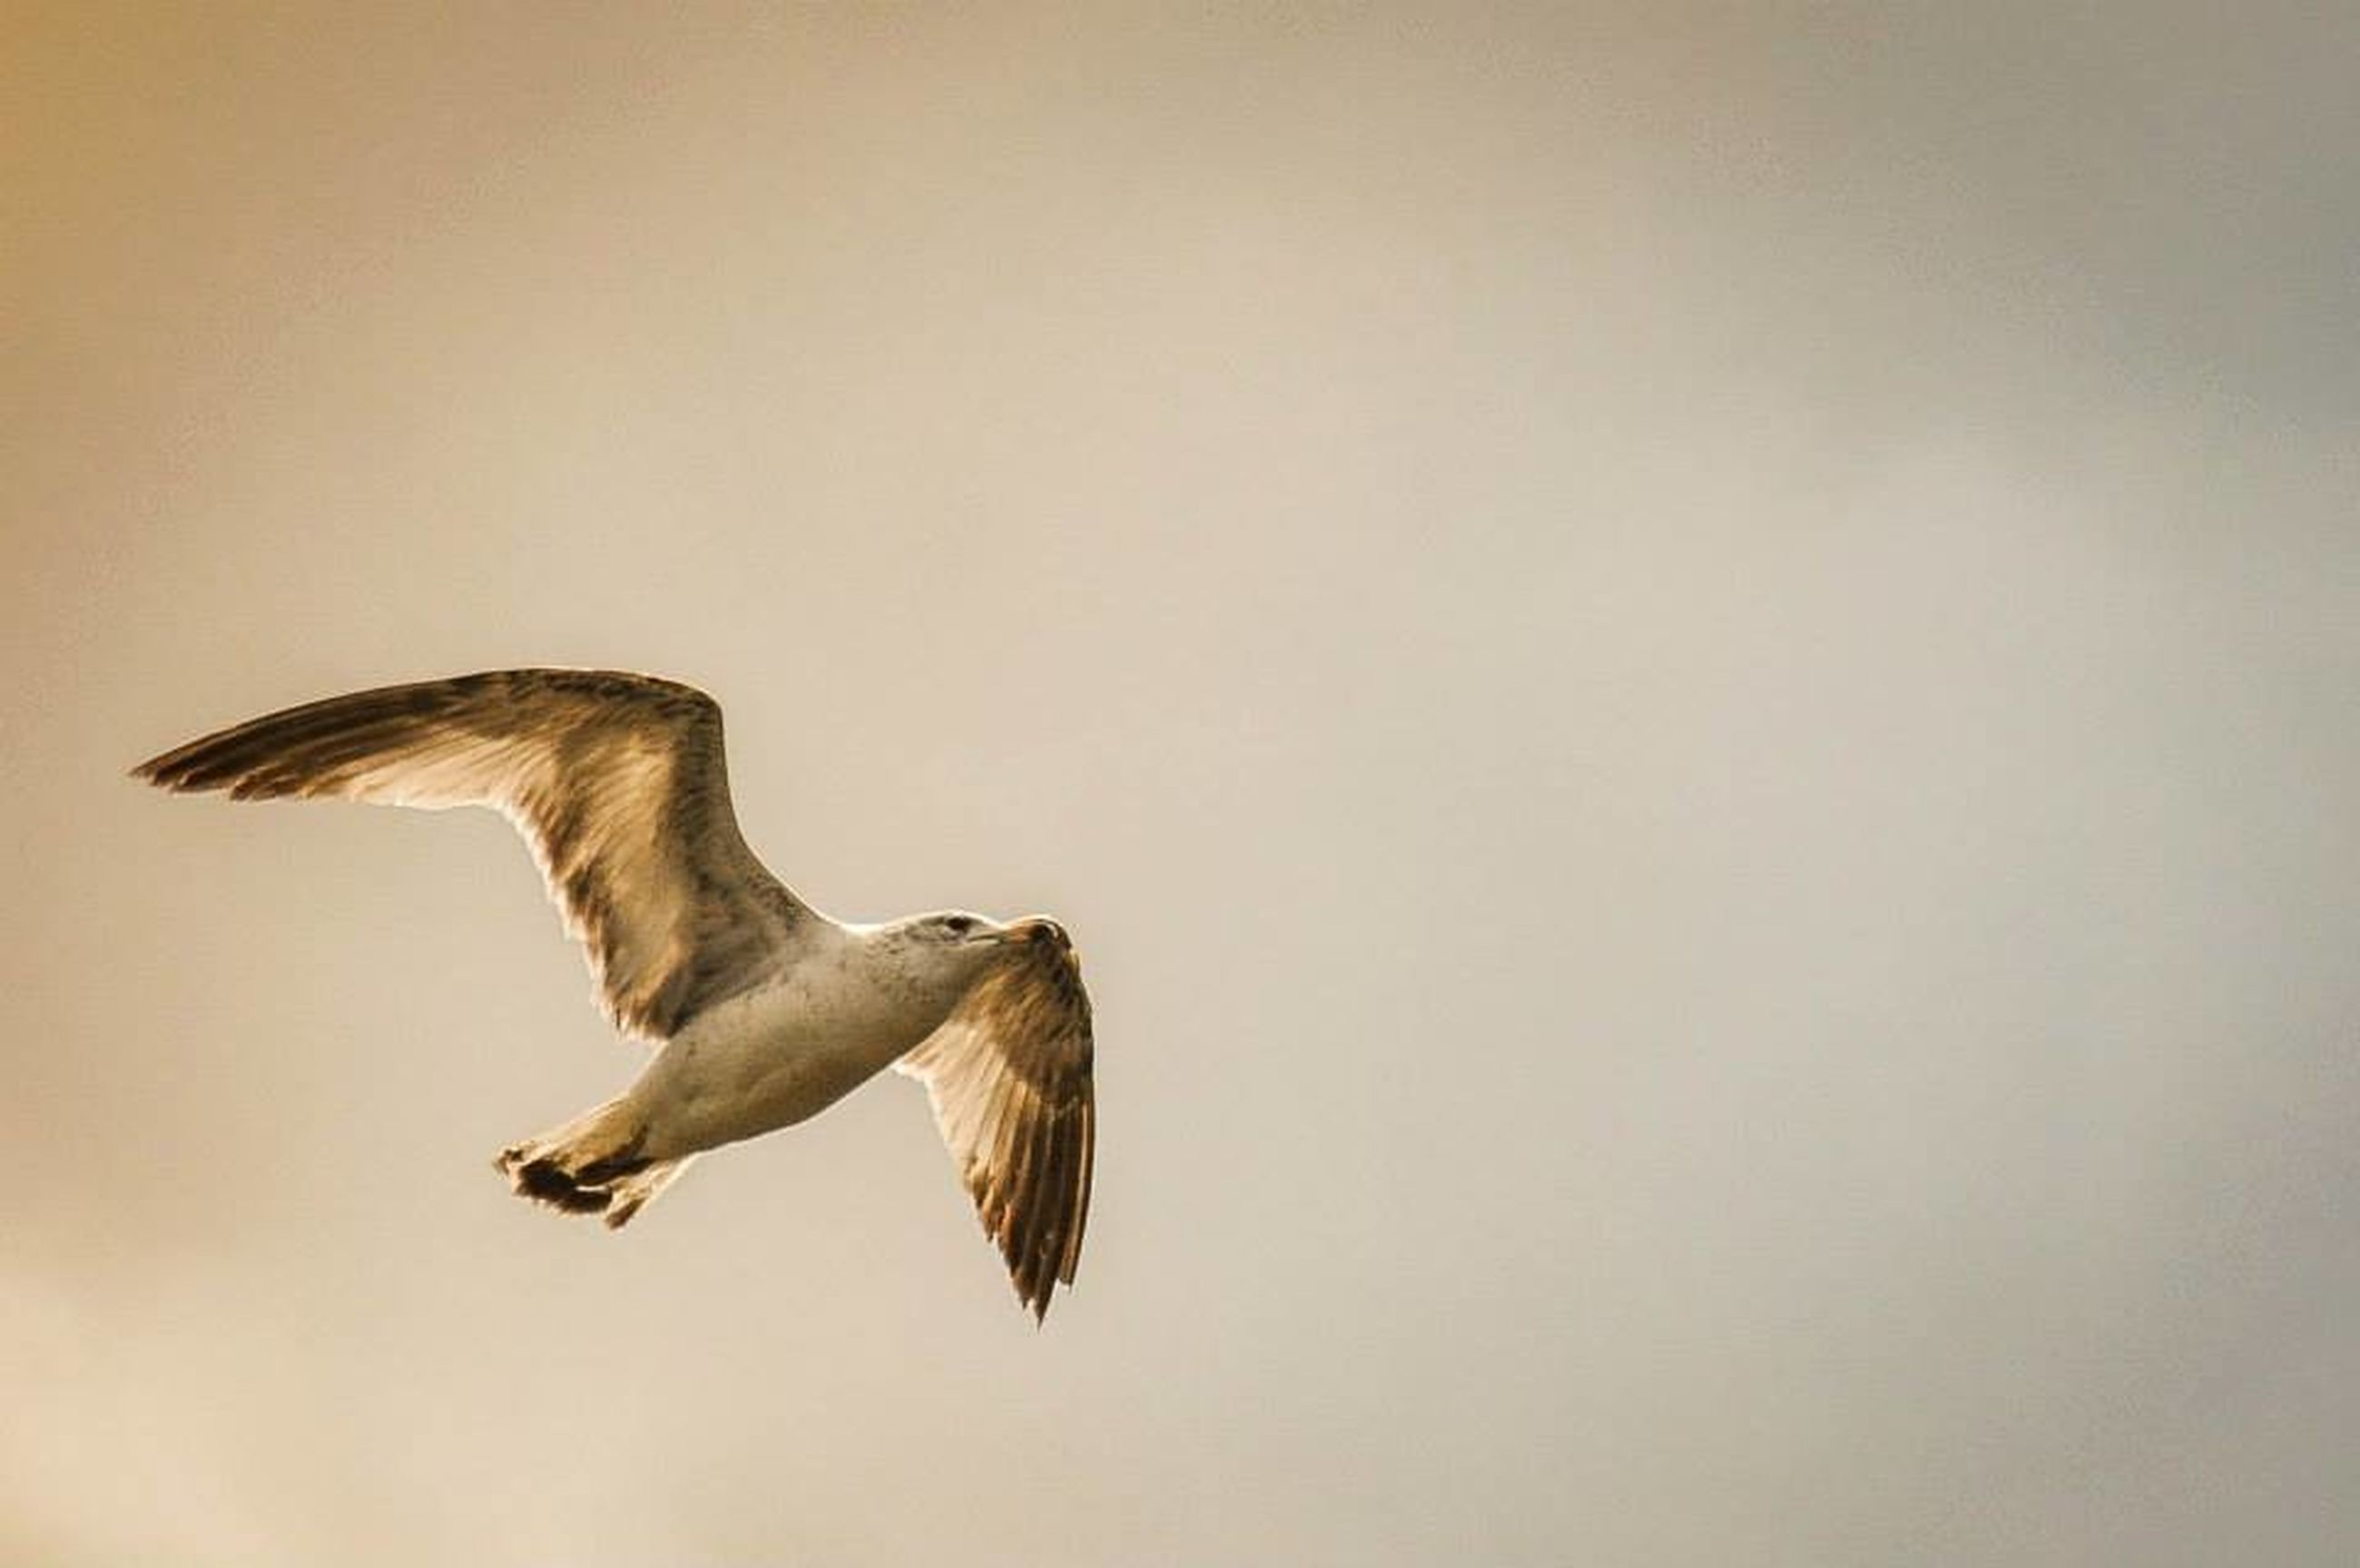 animal themes, bird, animals in the wild, one animal, wildlife, flying, spread wings, mid-air, seagull, low angle view, copy space, full length, side view, clear sky, nature, no people, outdoors, zoology, day, motion